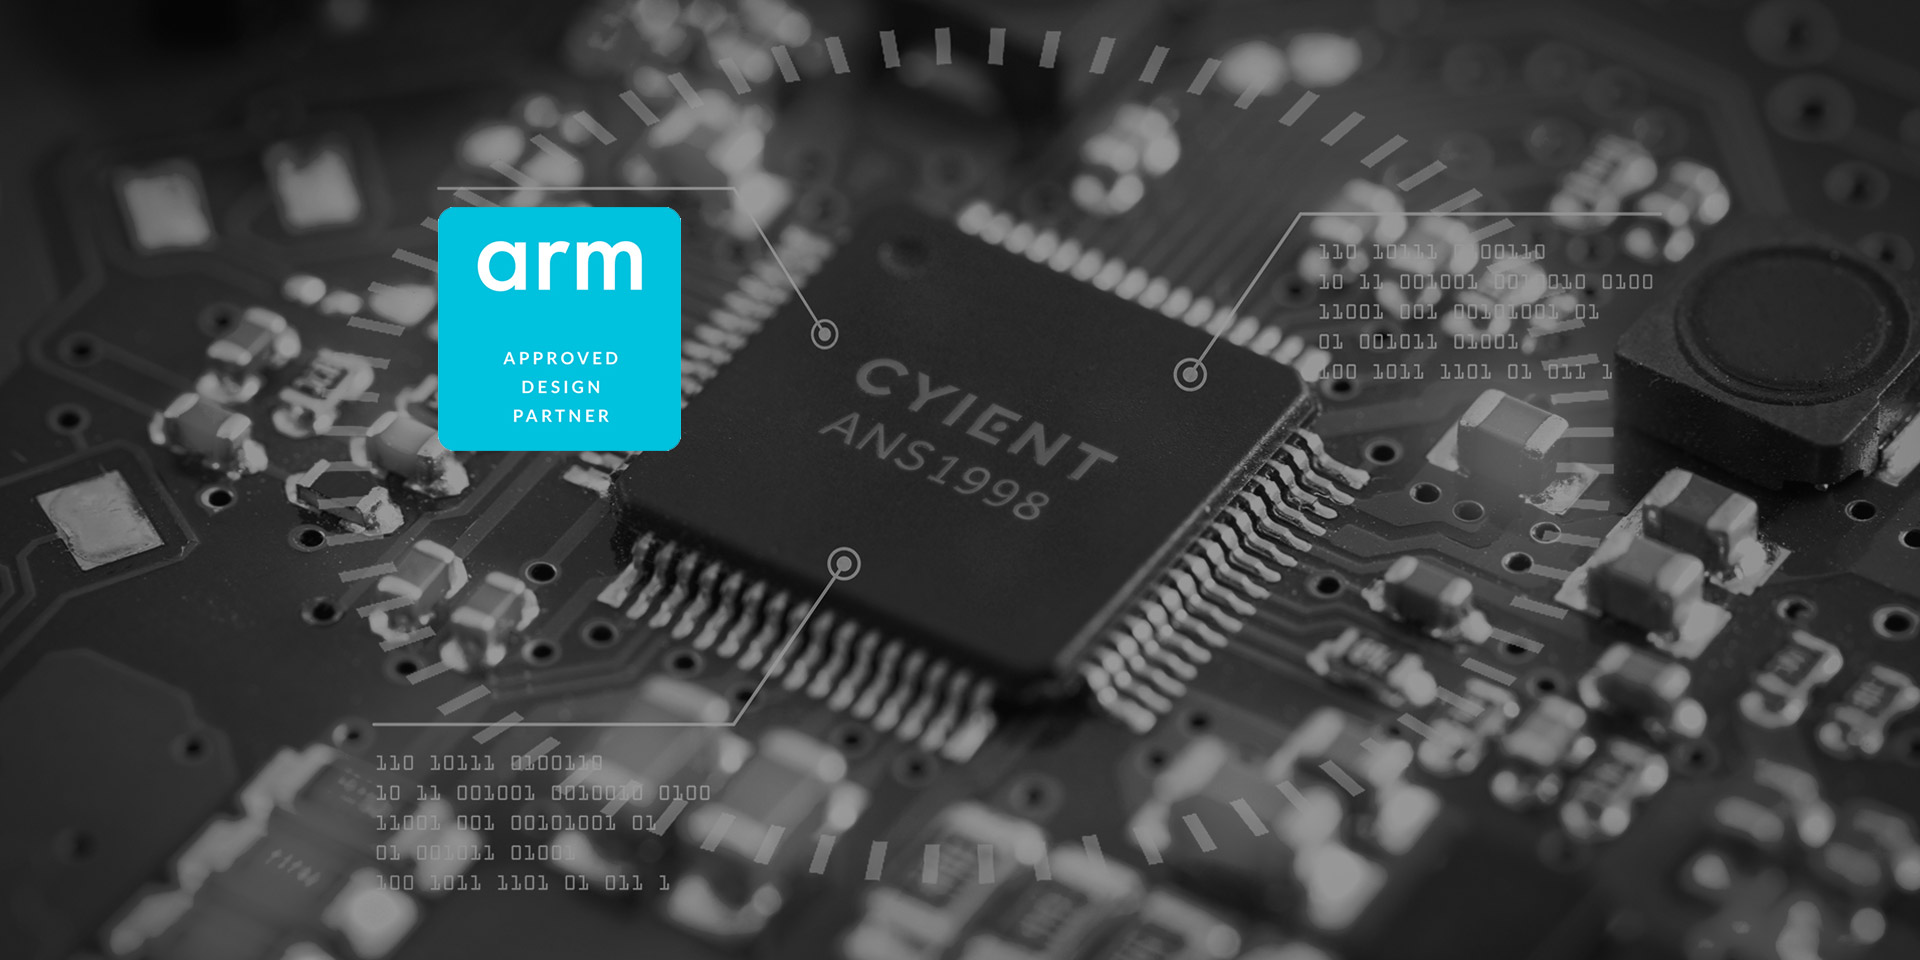 AnSem, a Cyient Company, Joins the Arm Approved Design Partner Program